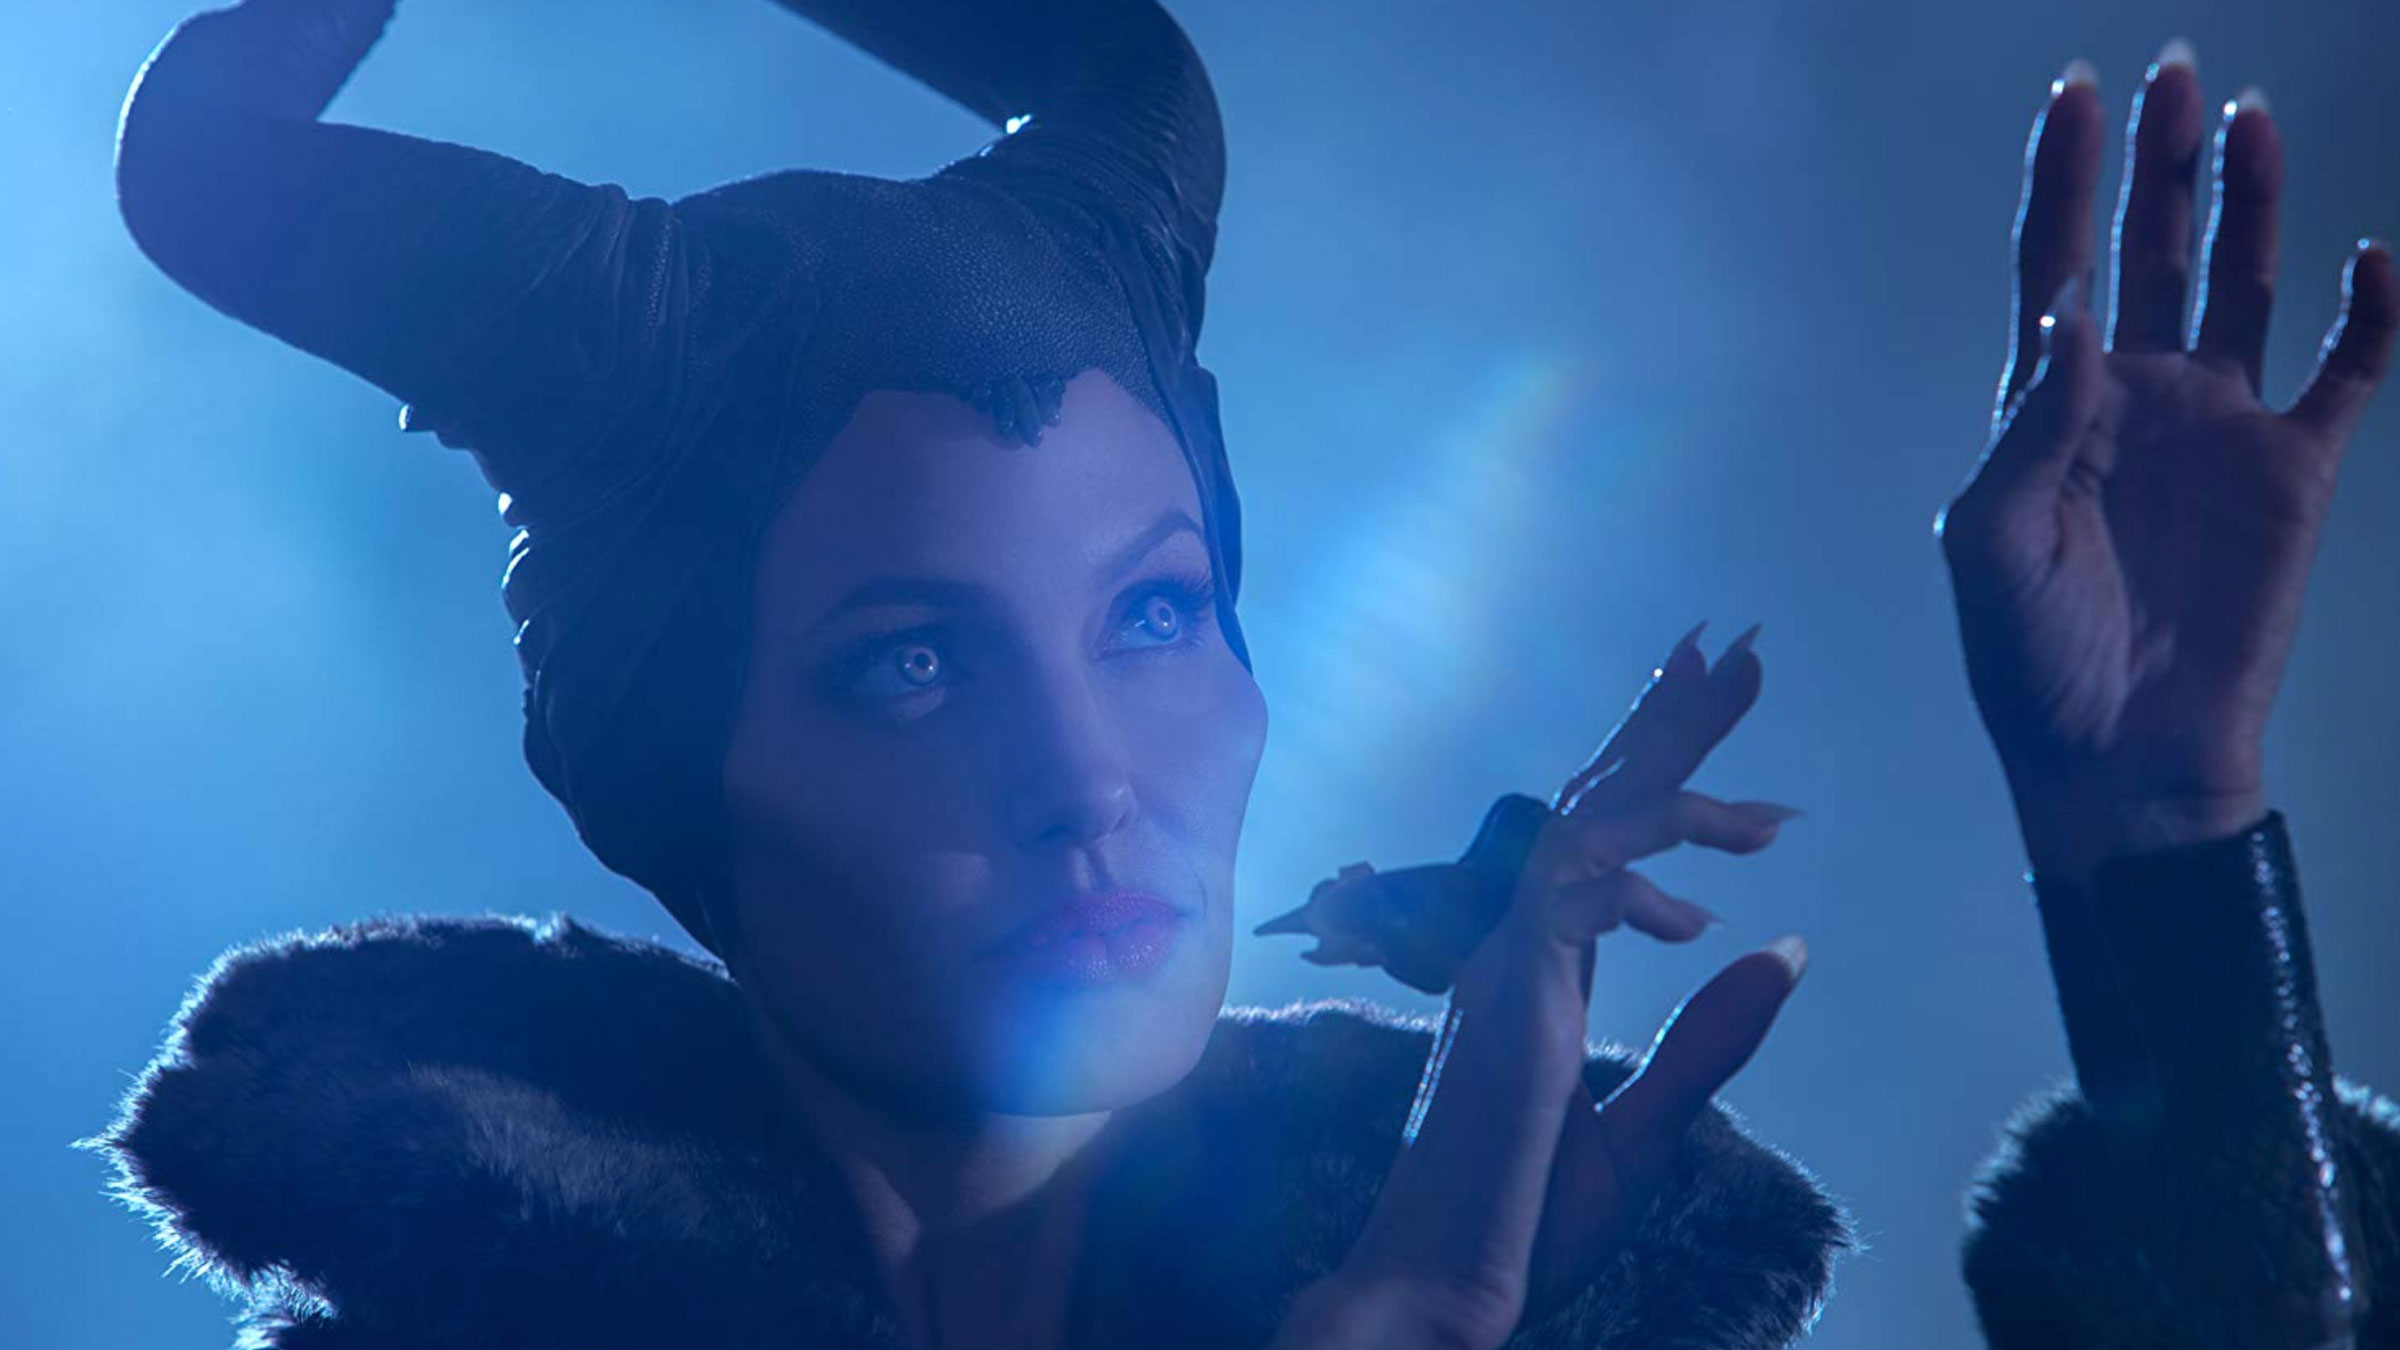 Maleficent (Ultra HD 4K Blu-ray)